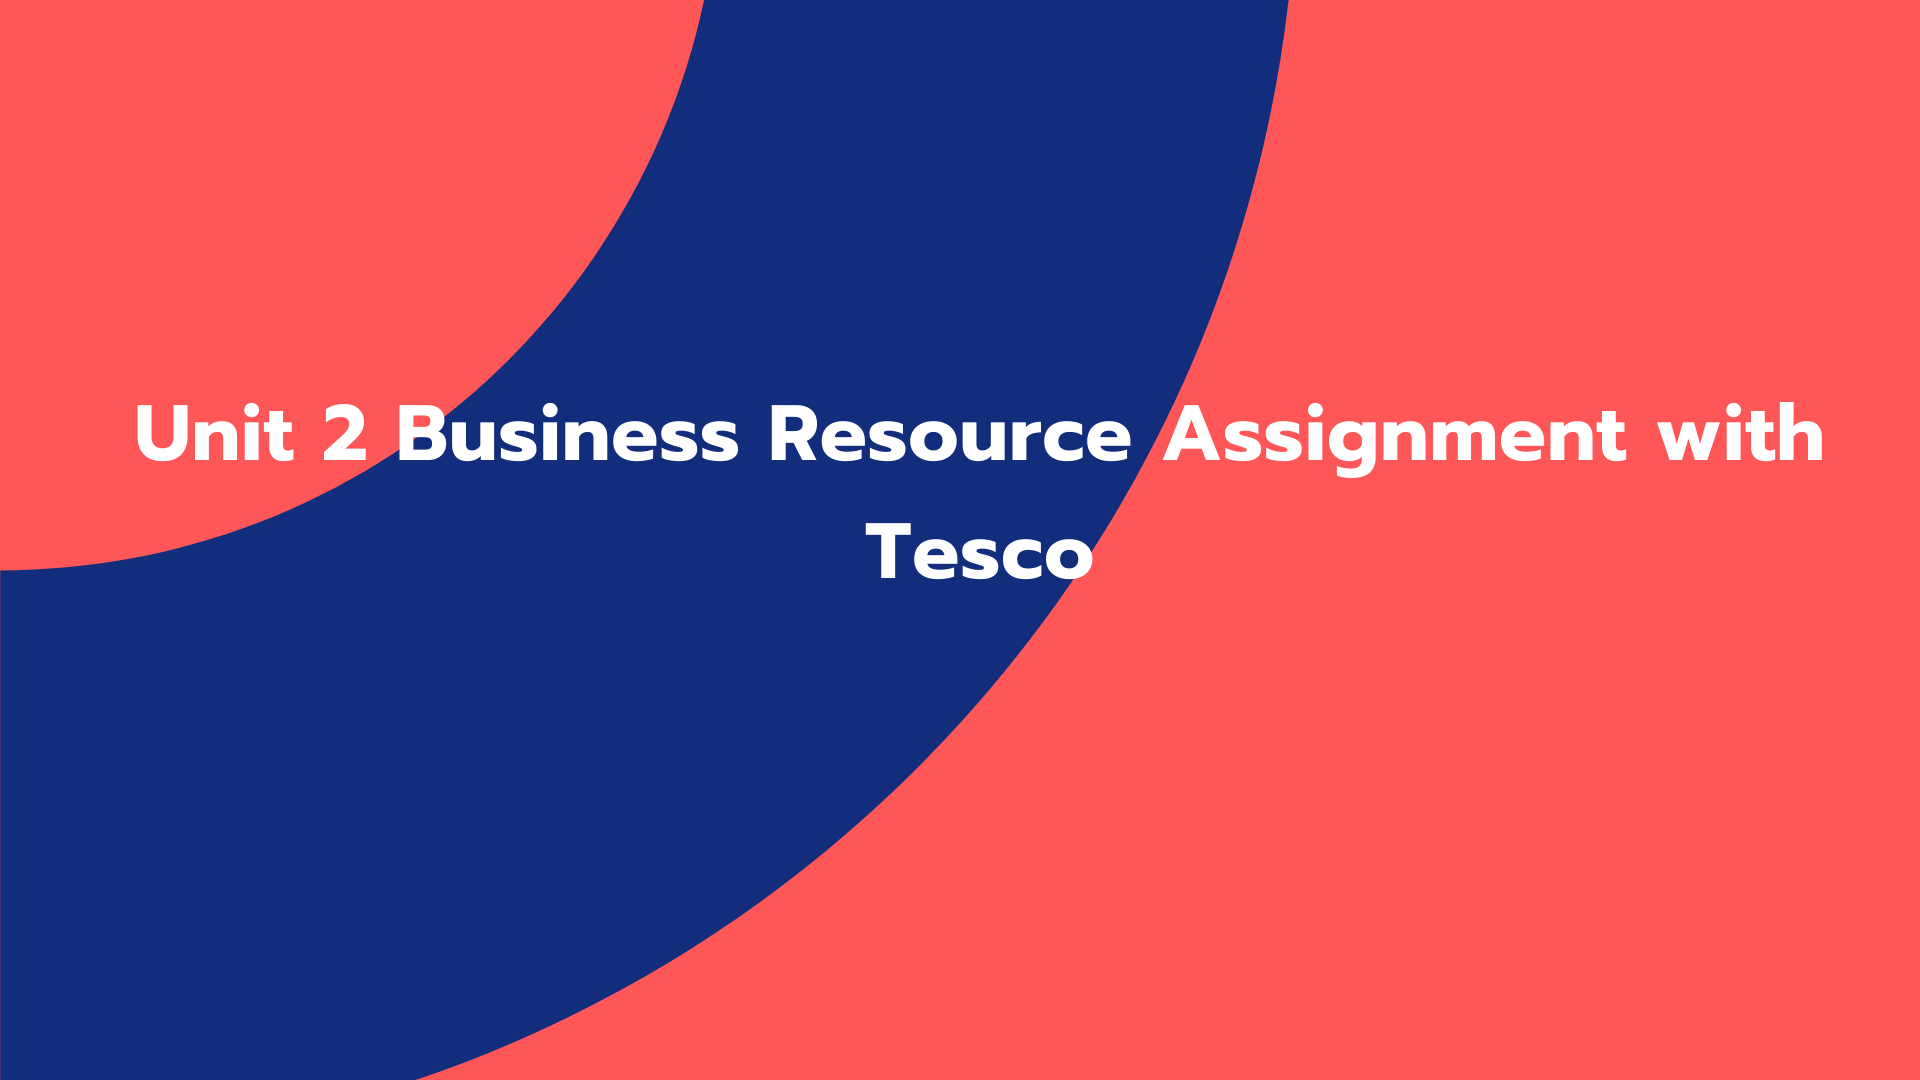 Unit 2 Business Resource Assignment with Tesco